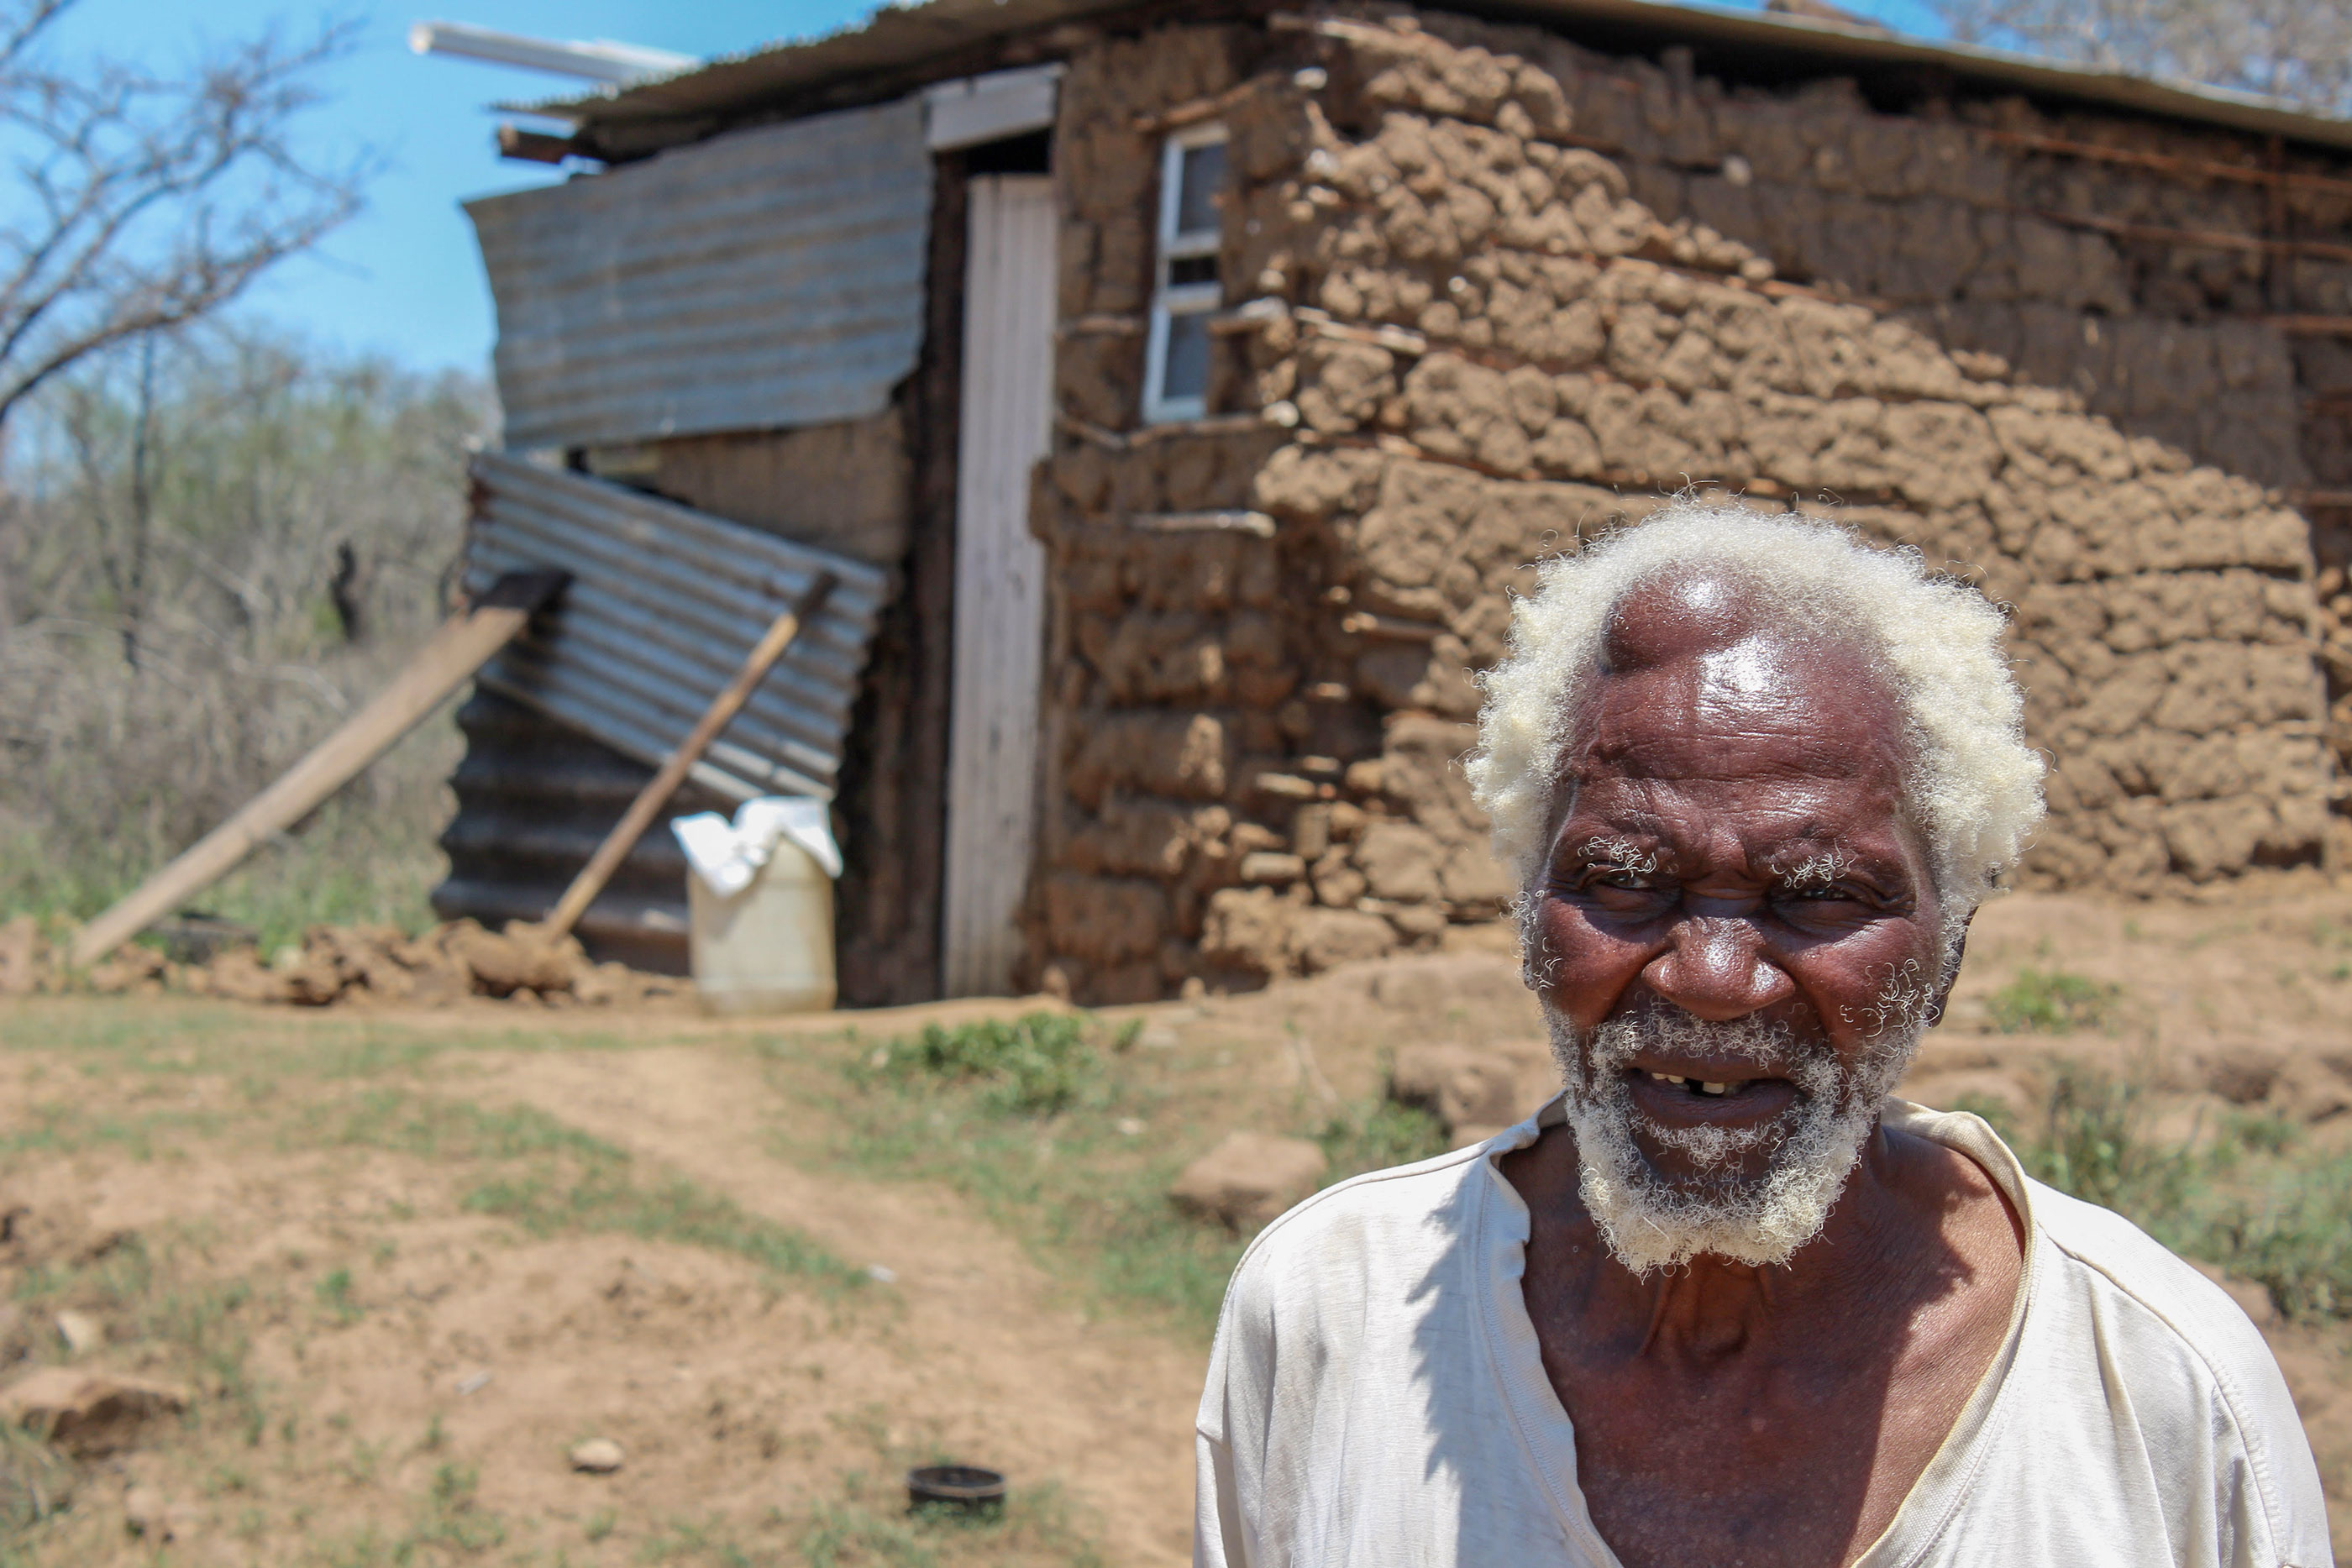 December 2015: Zabalaza Mshengu outside his home on Edmore Farm. Mshengu died on 13 August 2018 before this year's court ruling in July. (Photograph by the Association for Rural Advancement)